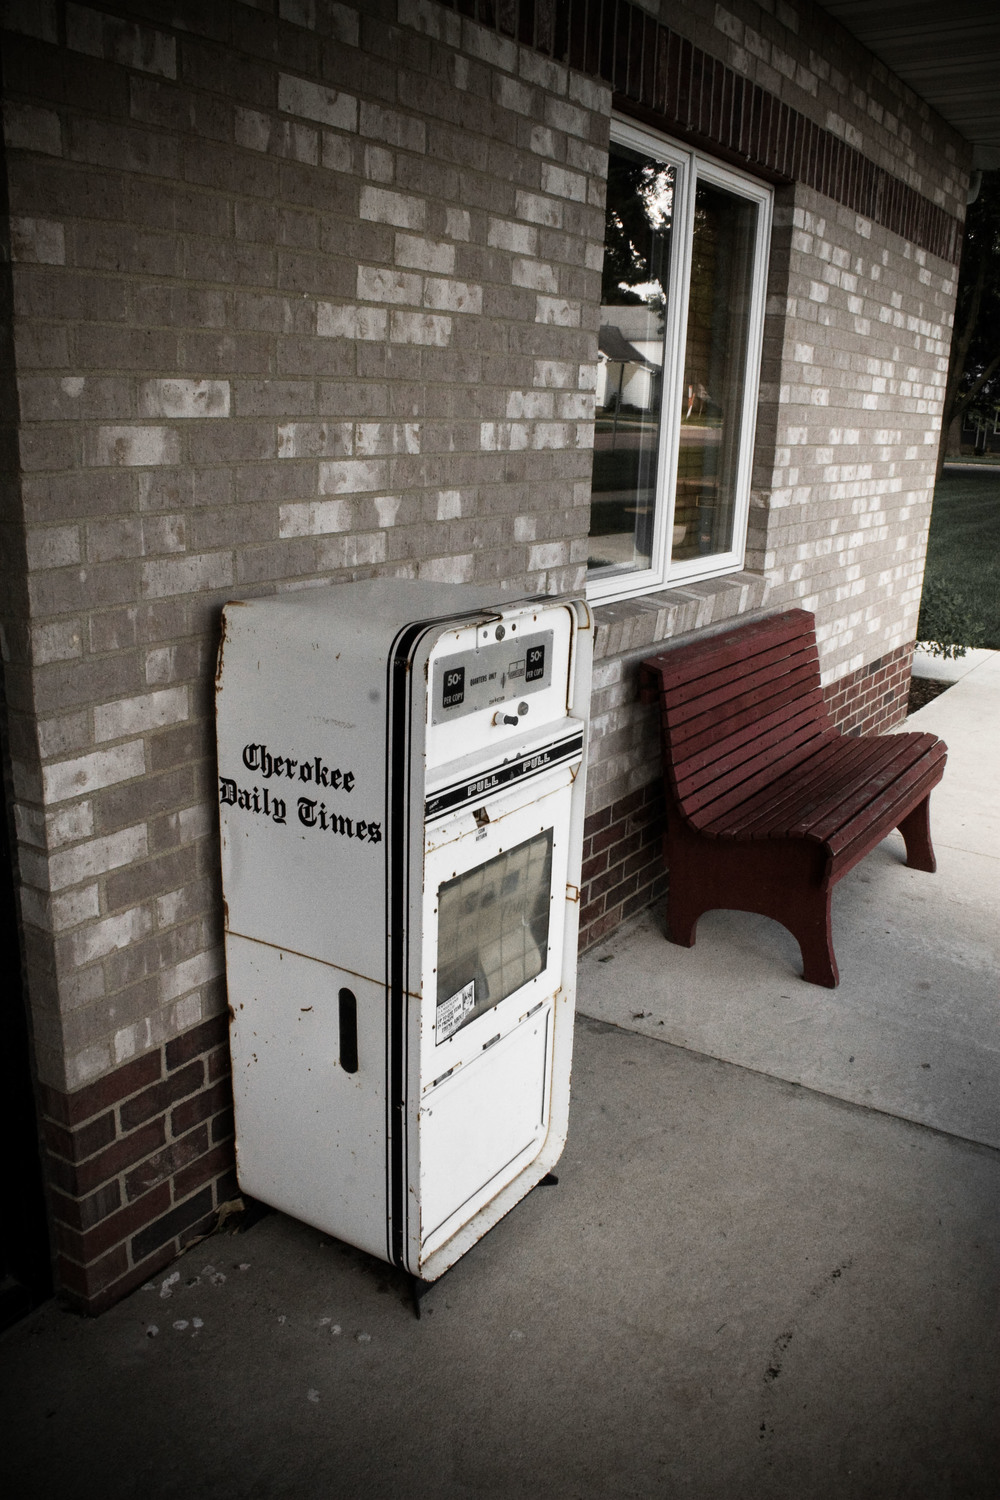 Newspaper stand by a bench